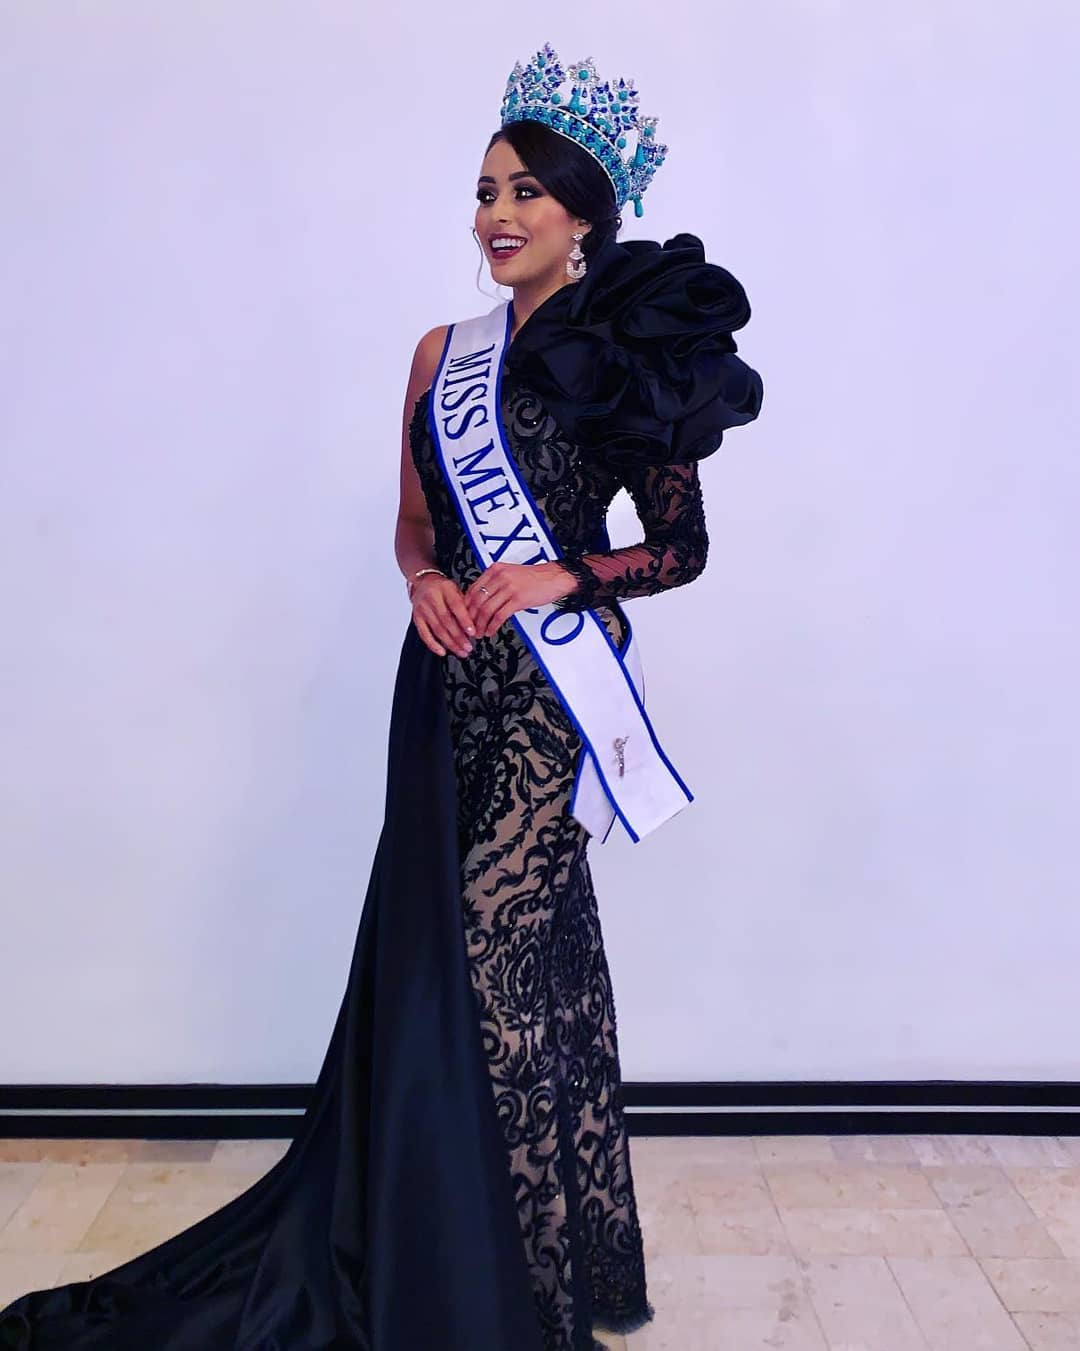 ashley alvidrez, top 12 de miss world 2019. - Página 2 70463711